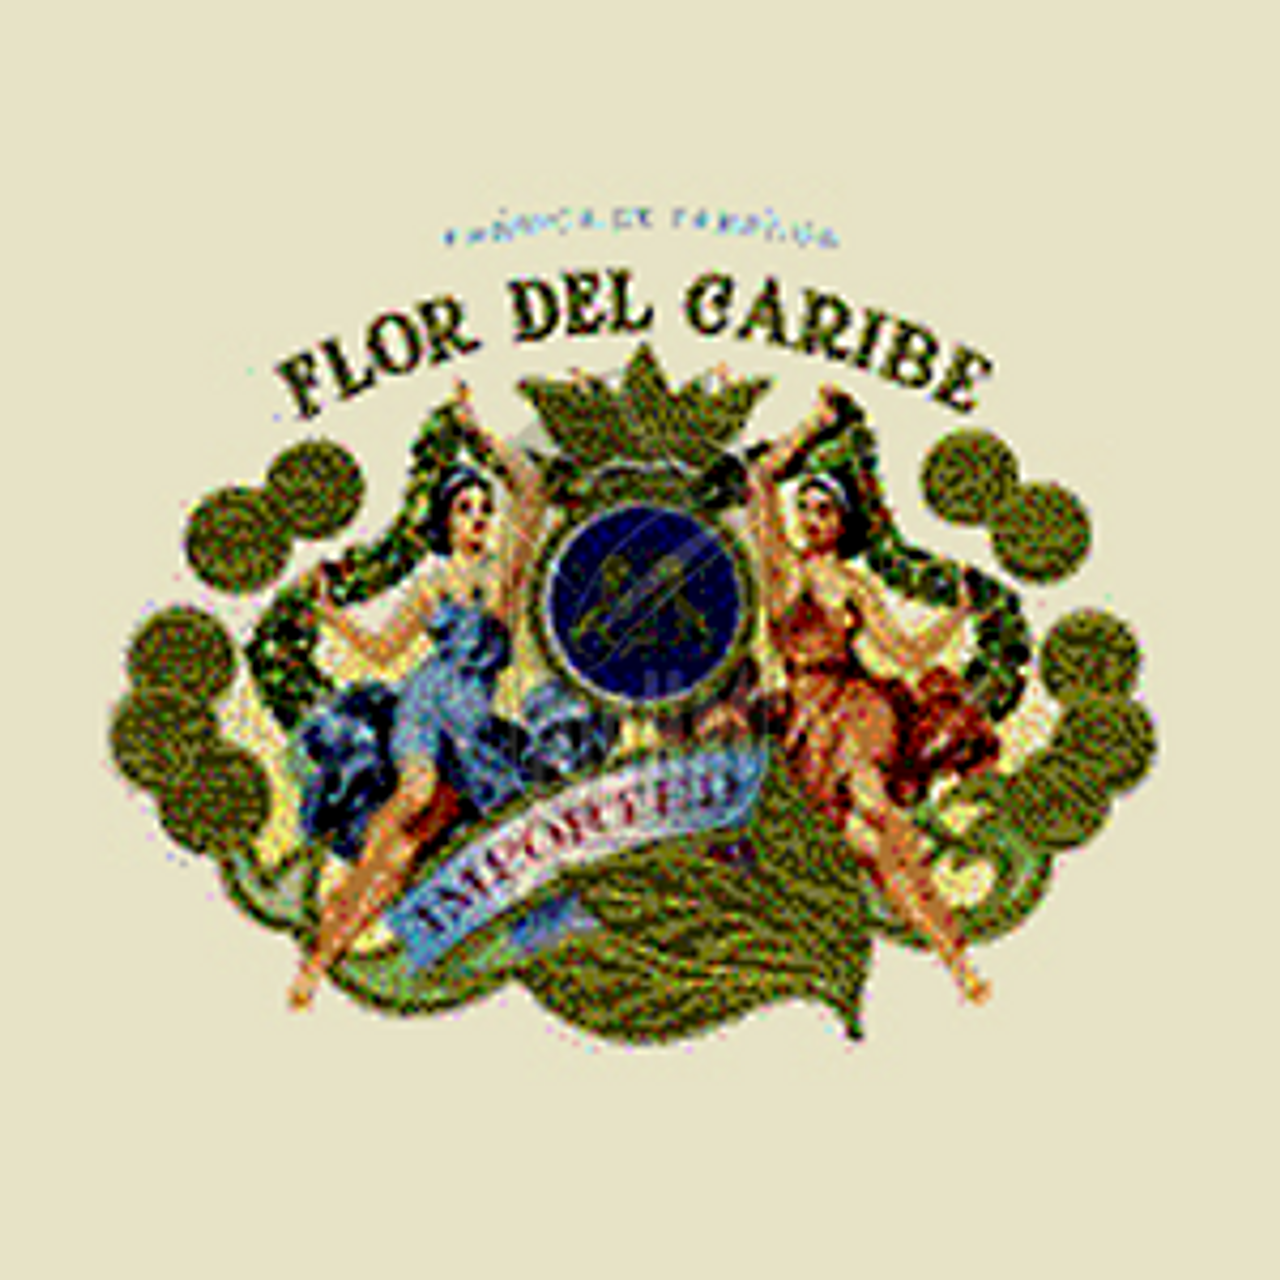 Flor Del Caribe Sampler Cigars - (Box of 5)